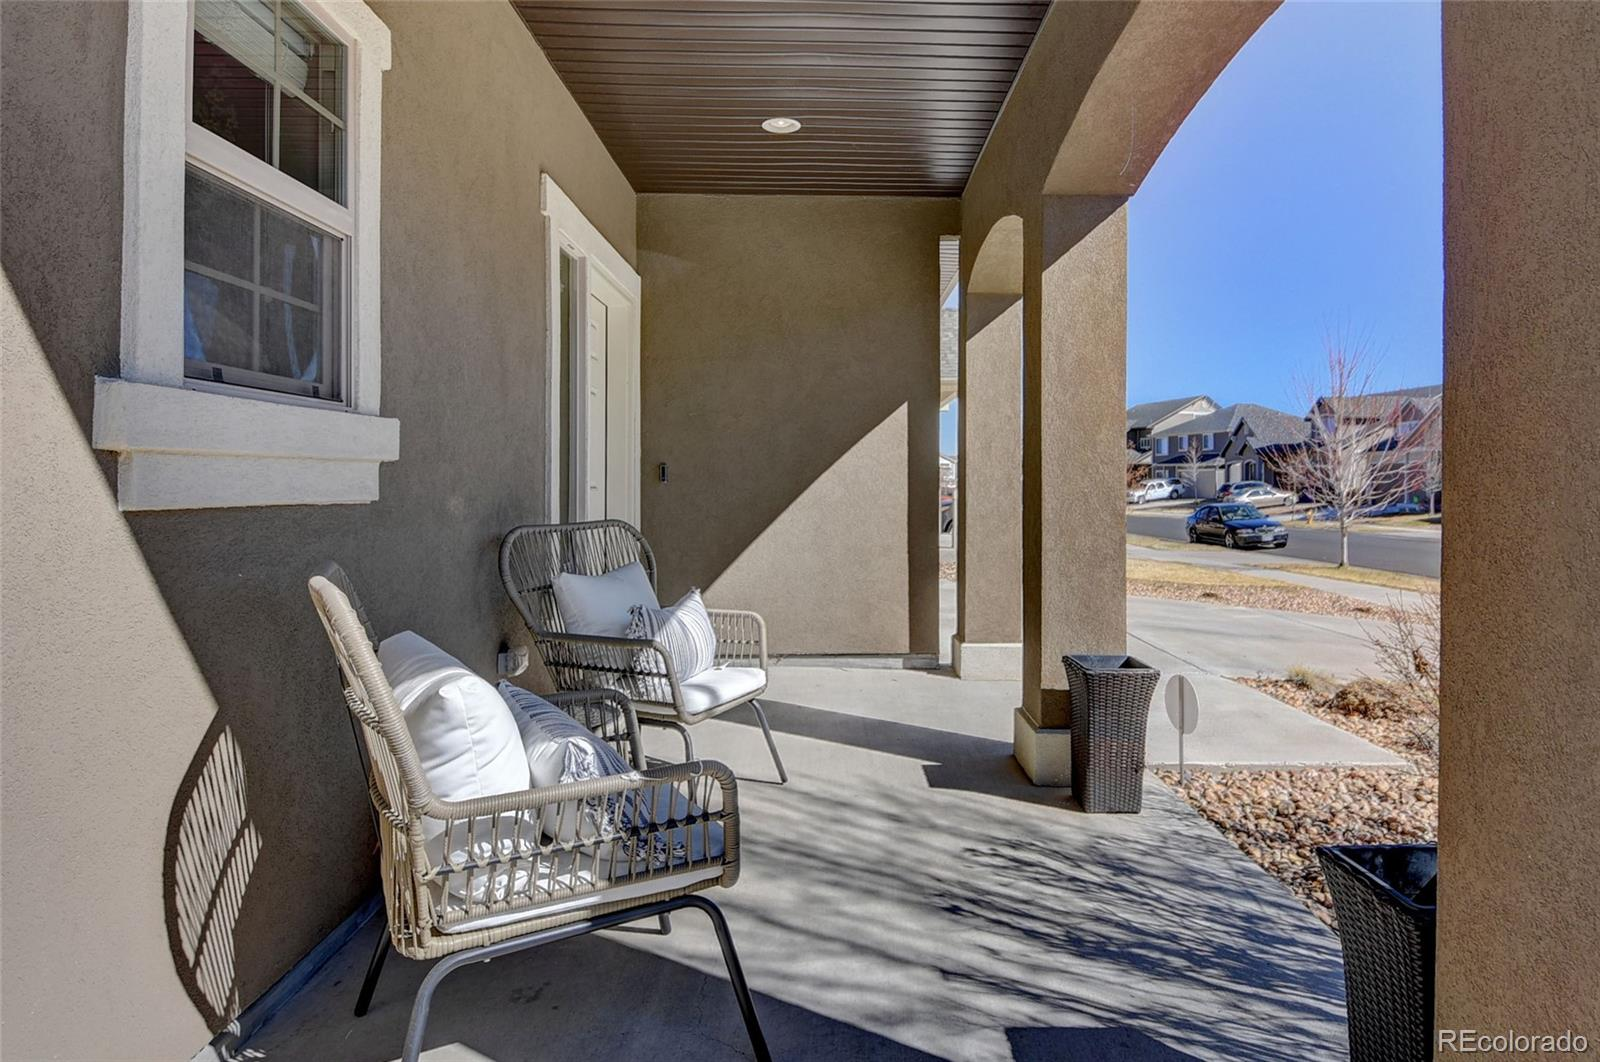 MLS# 3270712 - 2 - 4953 Cathay Court, Denver, CO 80249